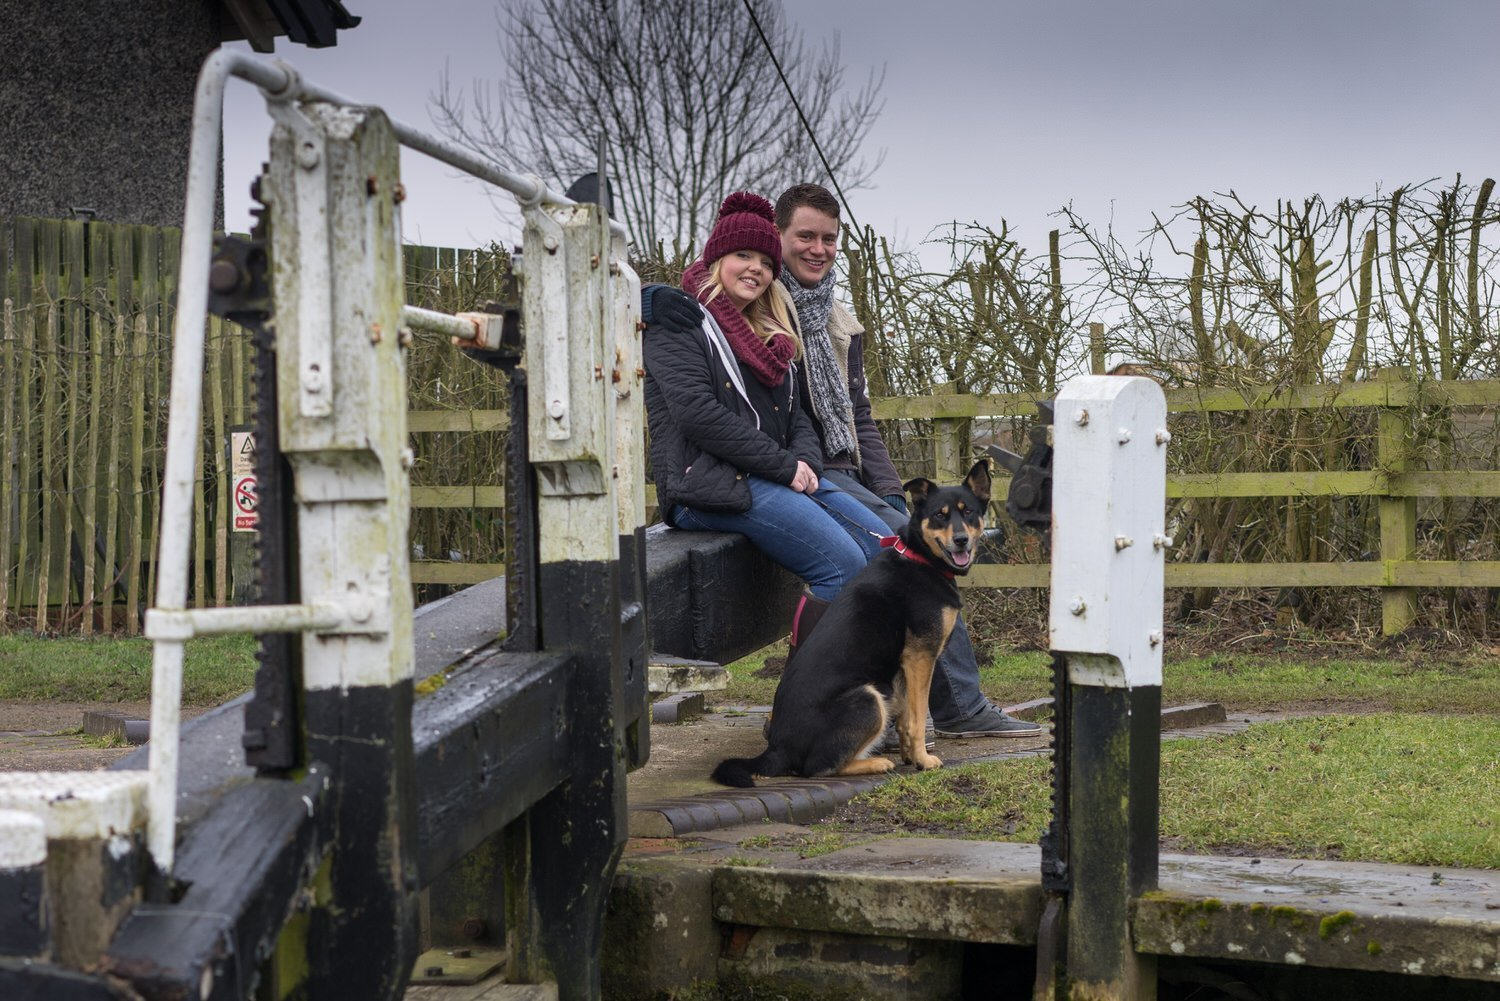 Stoke Bruerne Northamptonshire Engagement Family Photography couple sat on the lock gate with their puppy looking happy